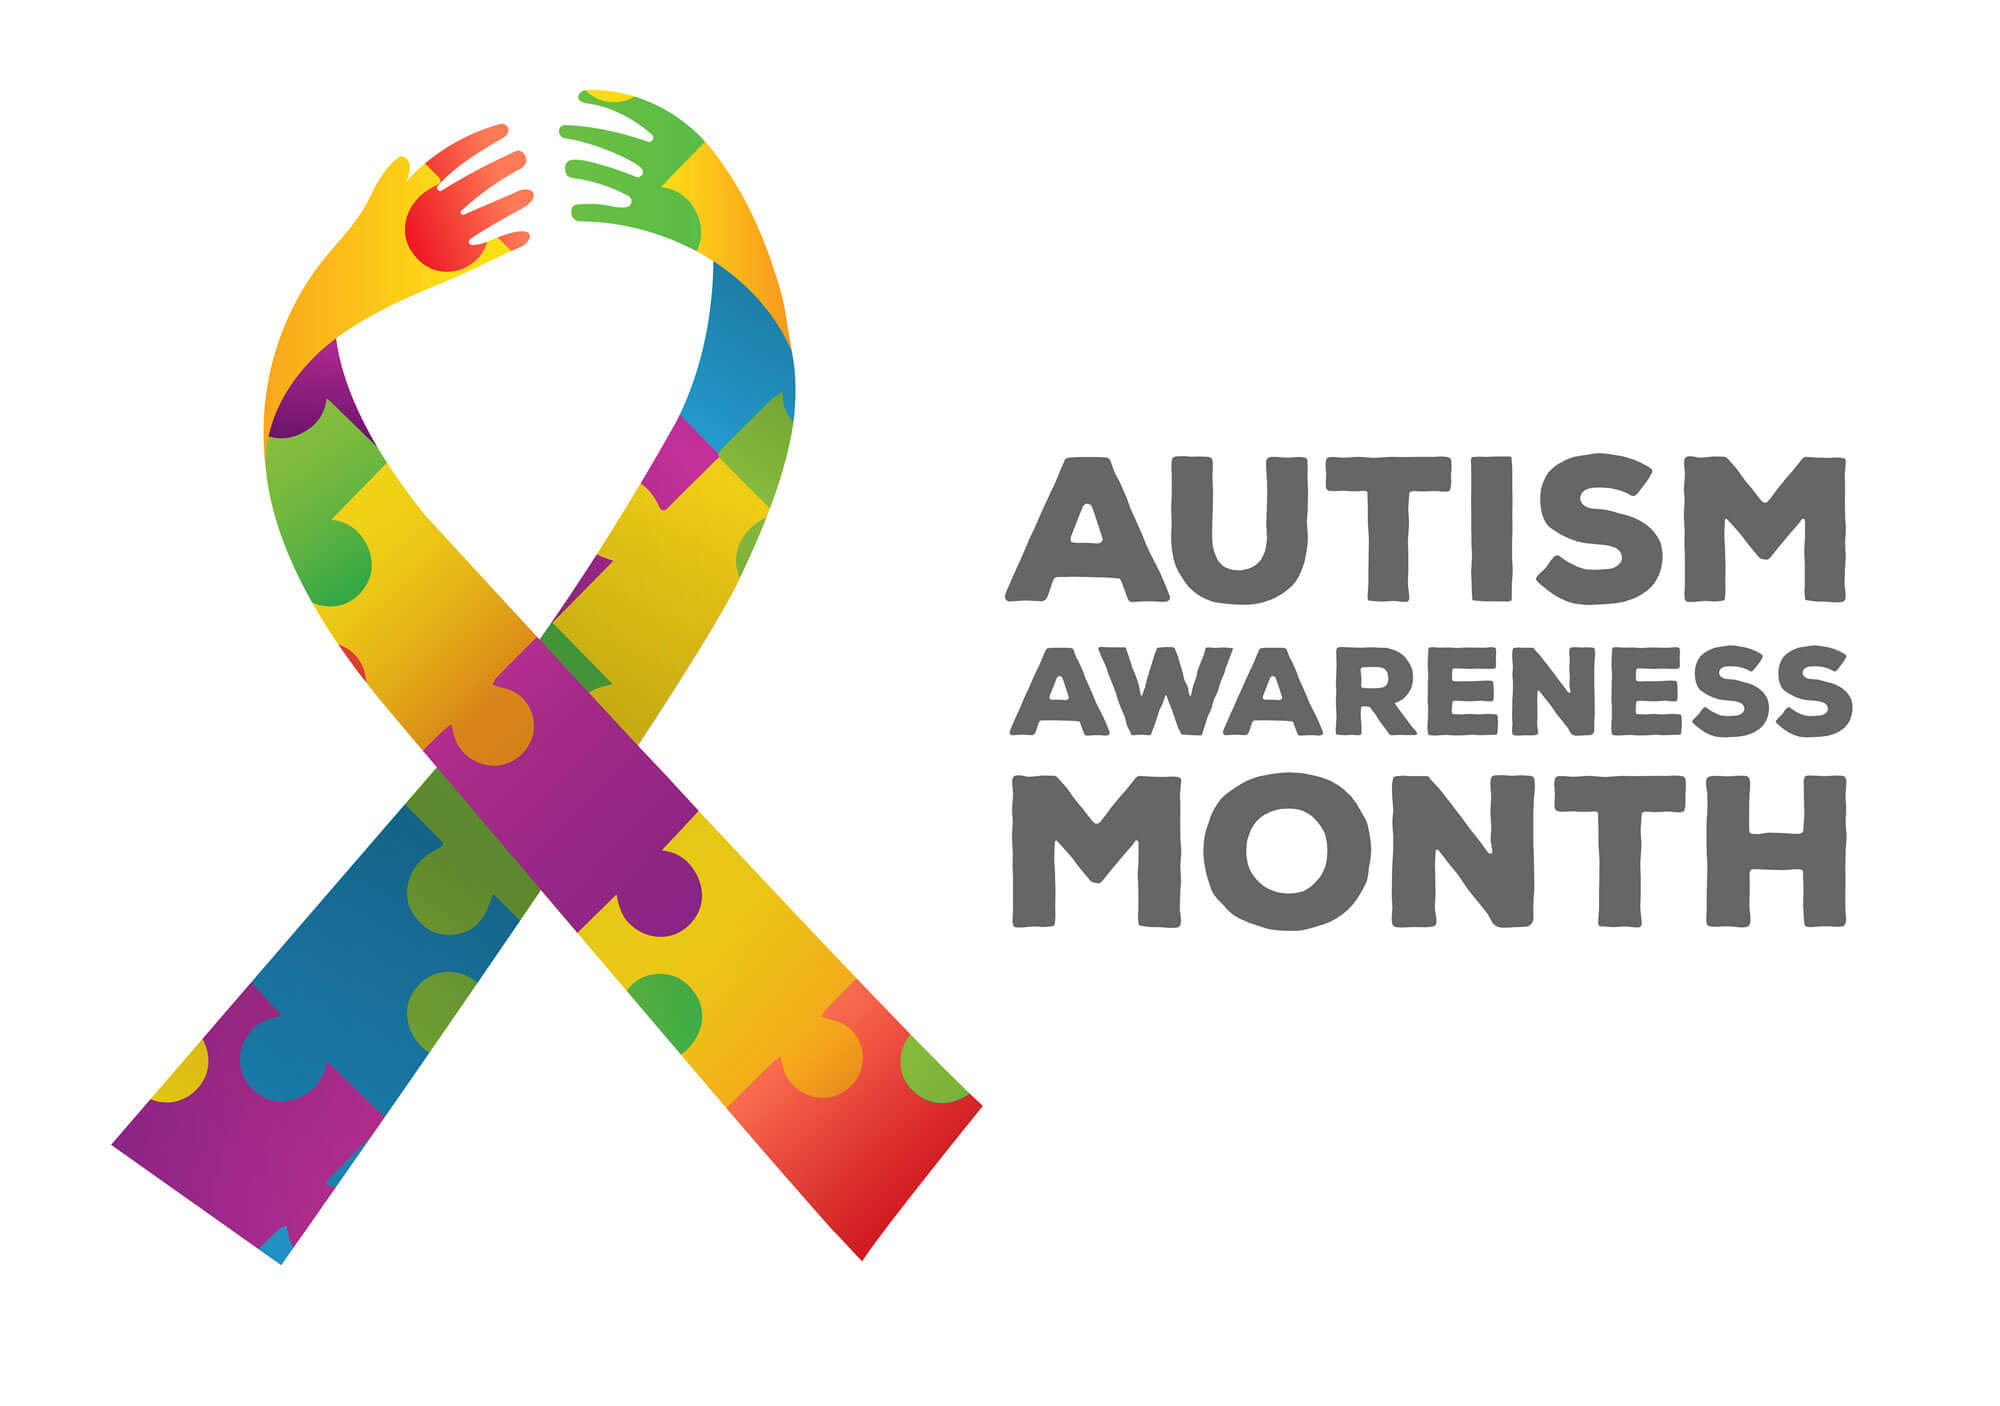 autism-awareness-month-1.jpg